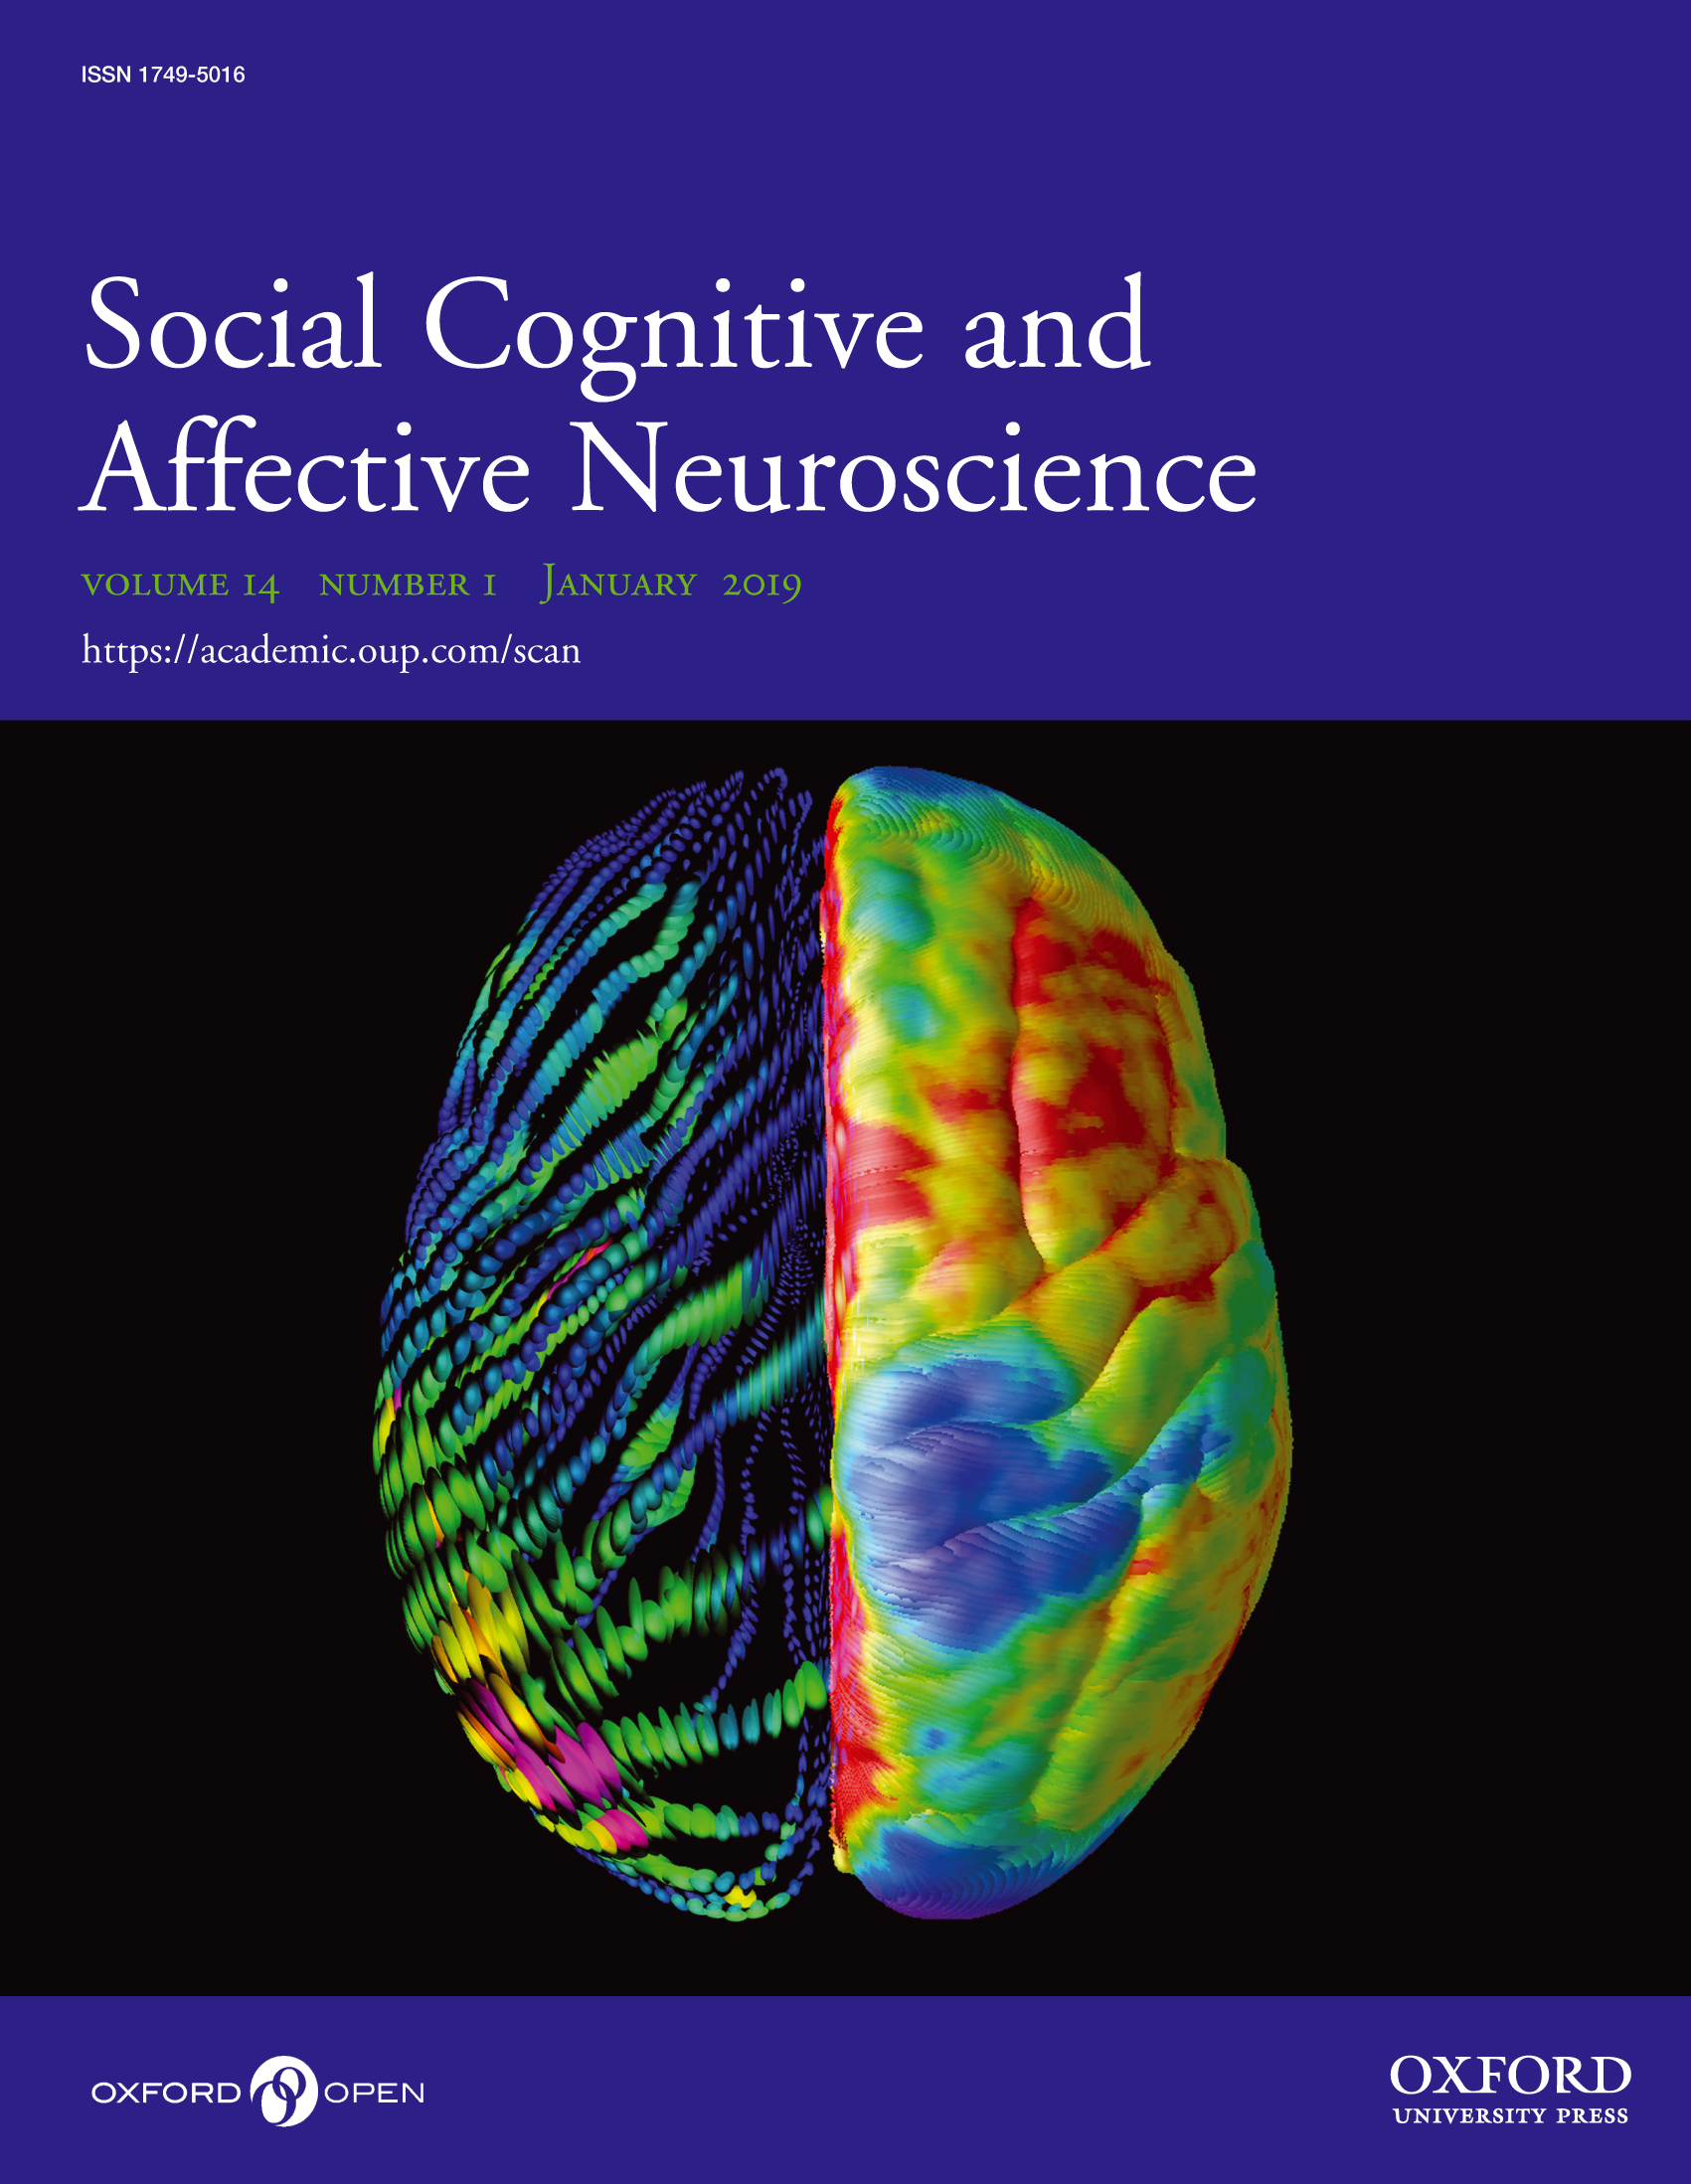 Launch of the journal Social Cognitive and Affective Neuroscience